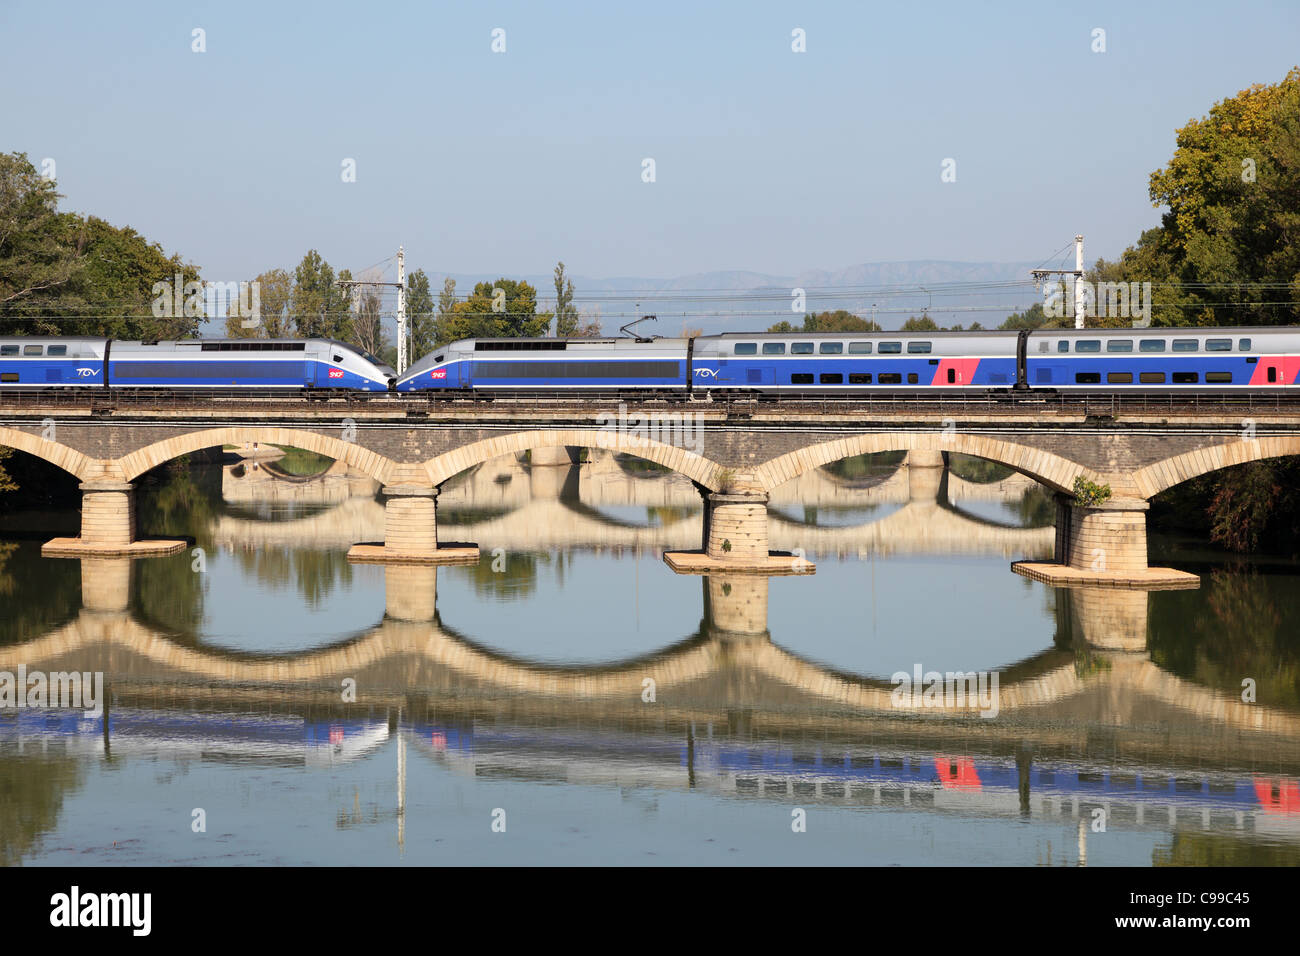 French high speed train TGV crossing the bridge in Beziers, France - Stock Image